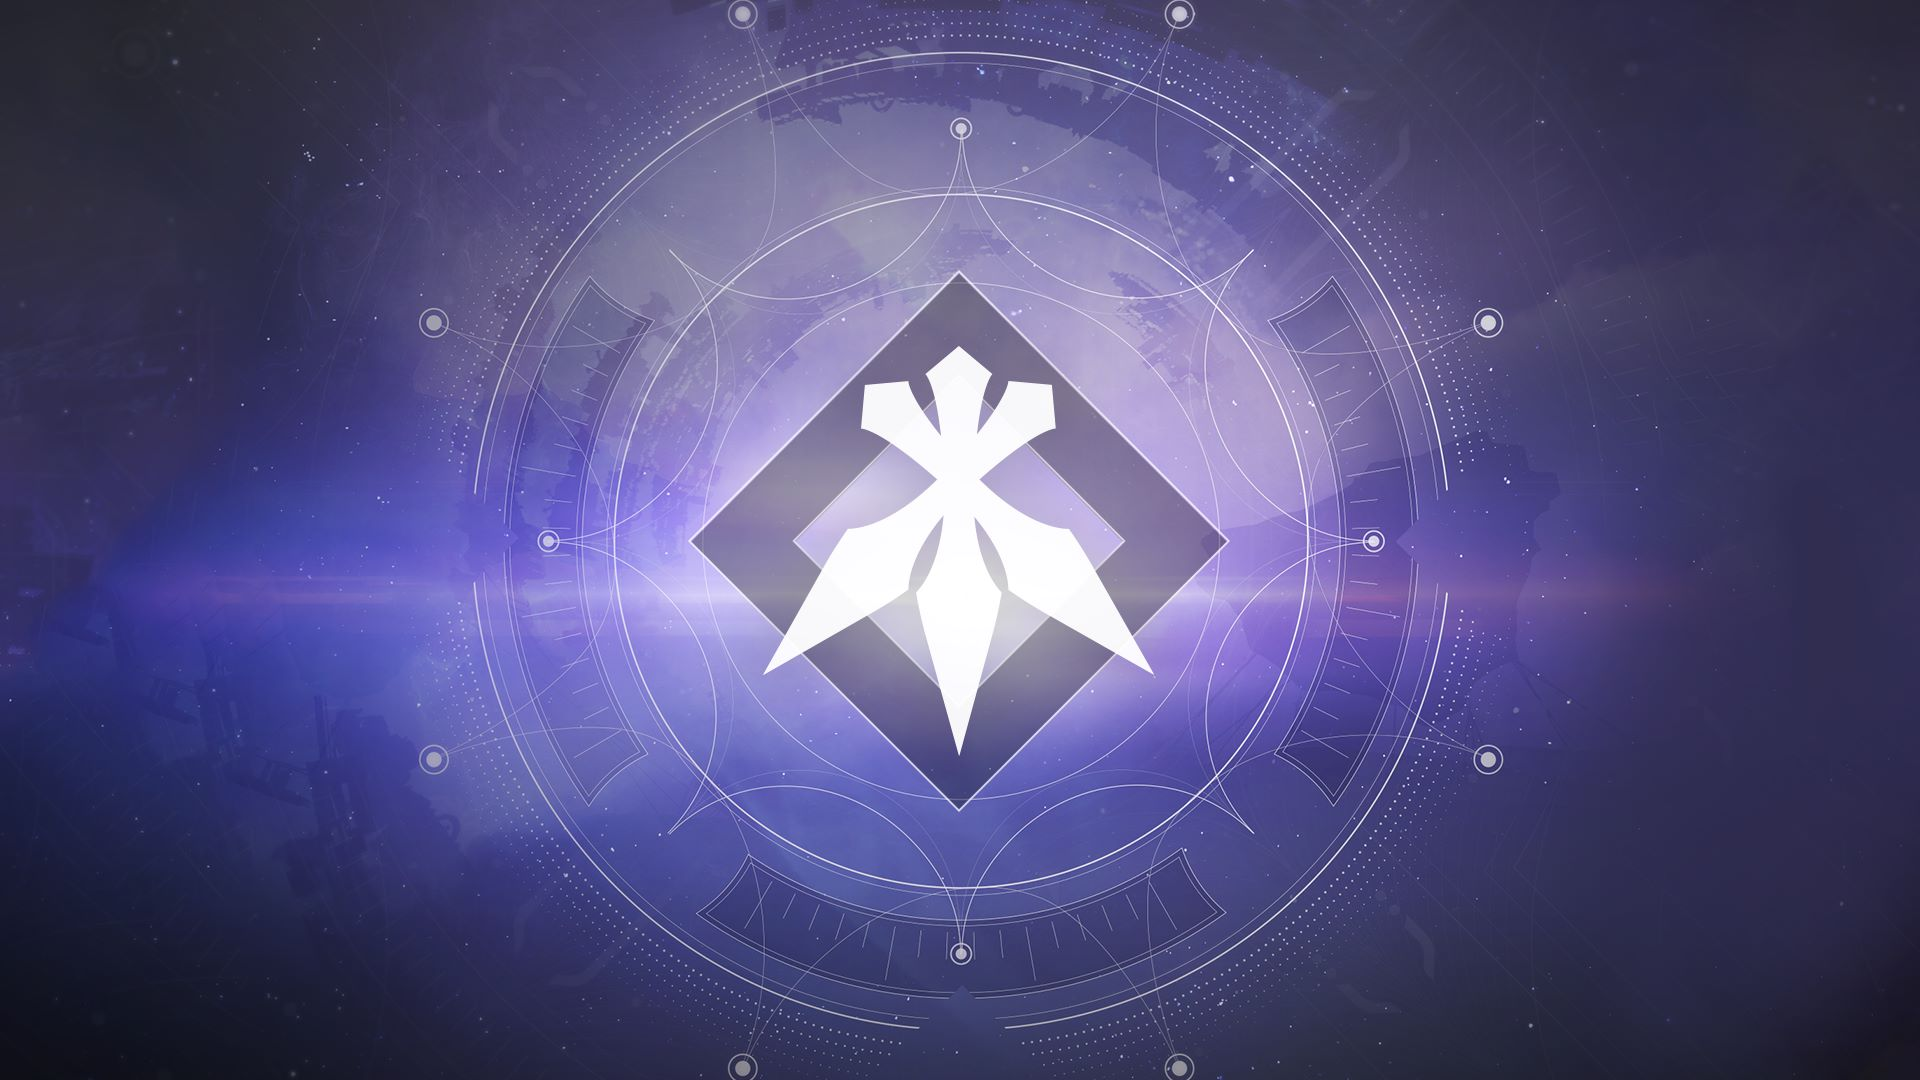 Free Download Buy Destiny 2 Forsaken Annual Pass Black Armory Microsoft Store 1920x1080 For Your Desktop Mobile Tablet Explore 17 Destiny 2 Black Armory Wallpapers Destiny 2 Black Armory